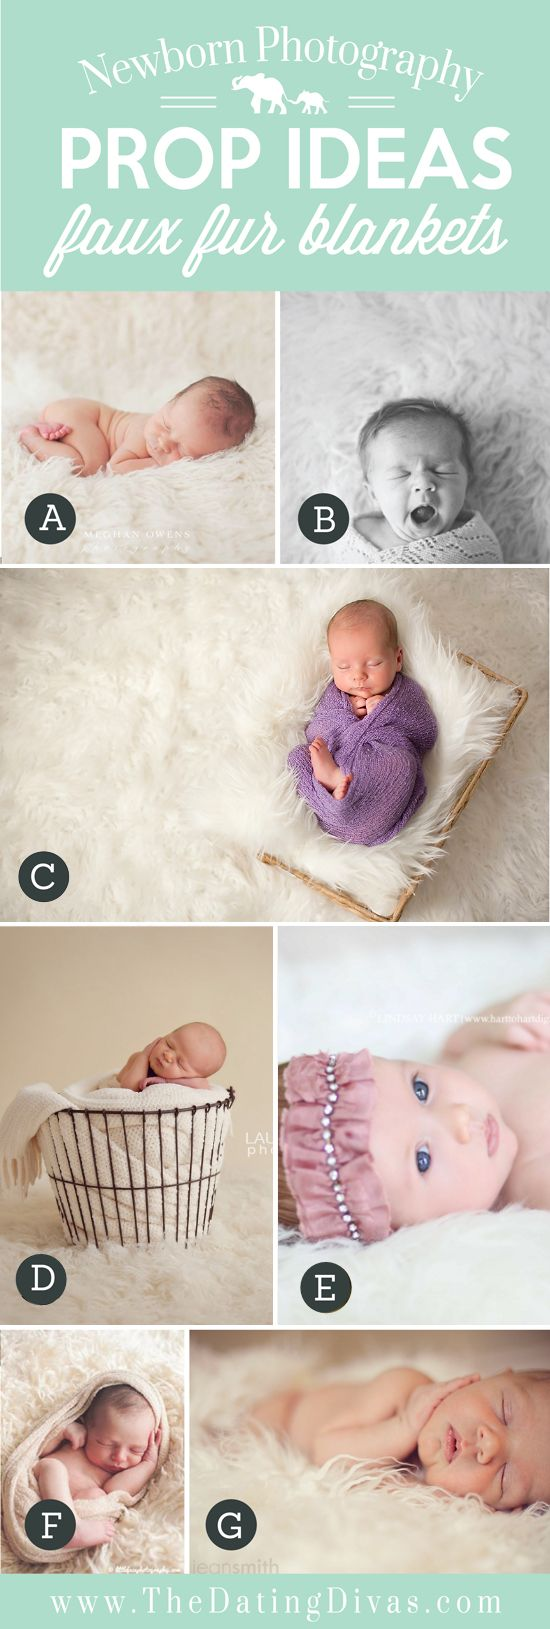 These and lots more ideas for posing baby and family.